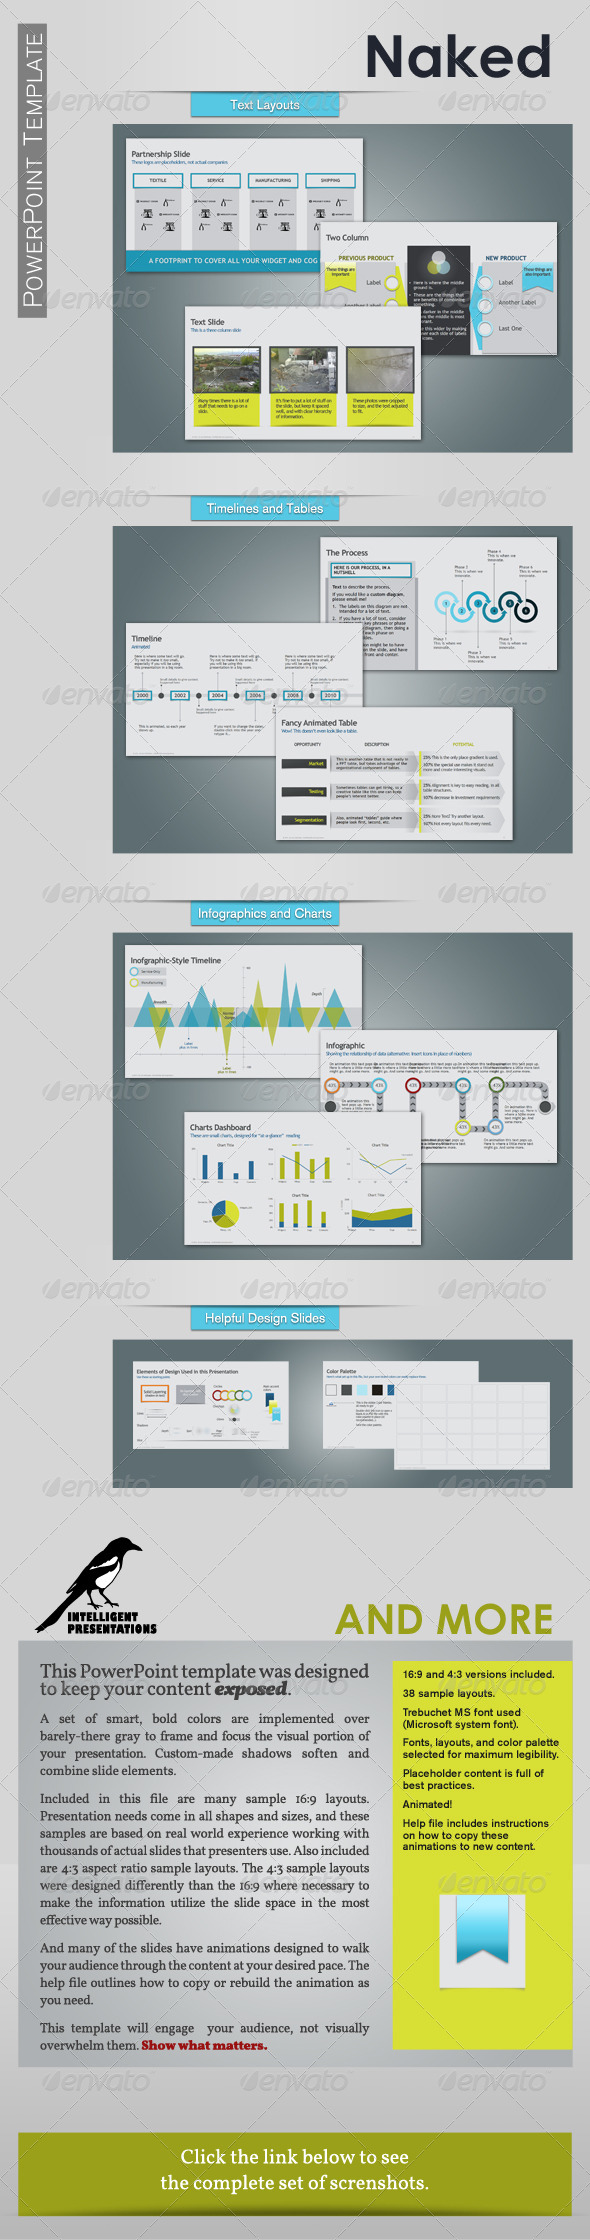 Naked PowerPoint Template - Presentation Templates